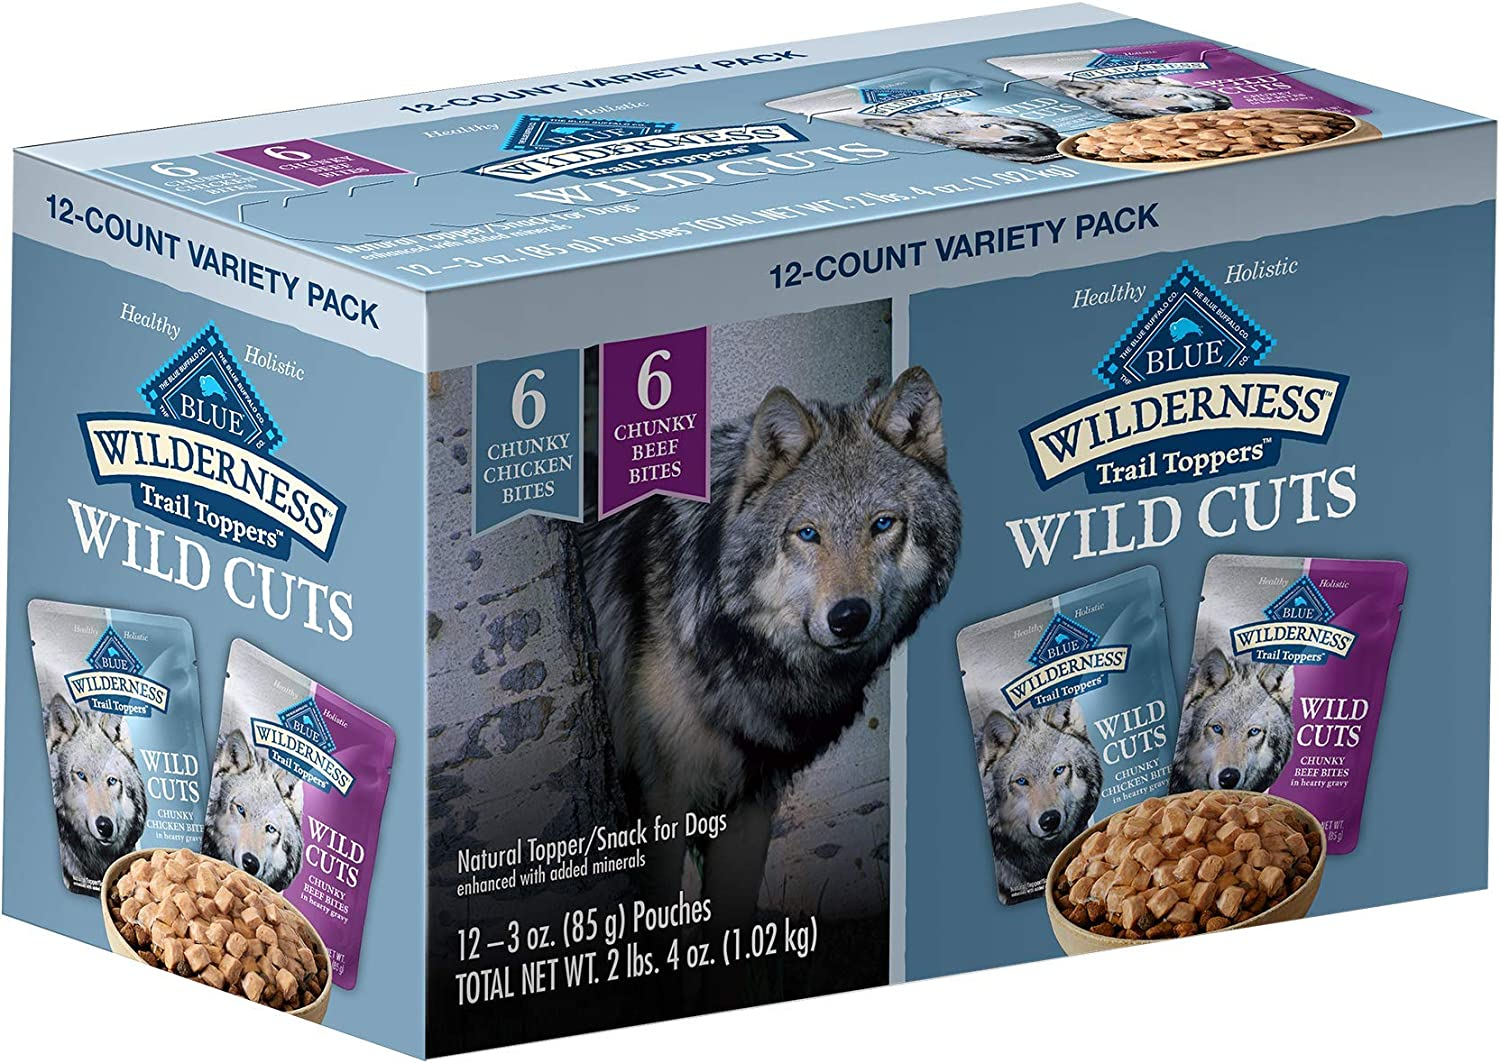 Blue Buffalo Wilderness Trail Toppers Wild Cuts High Protein, Natural Wet Dog Food, Chunky Bites in Hearty Gravy, 3-oz Pouches